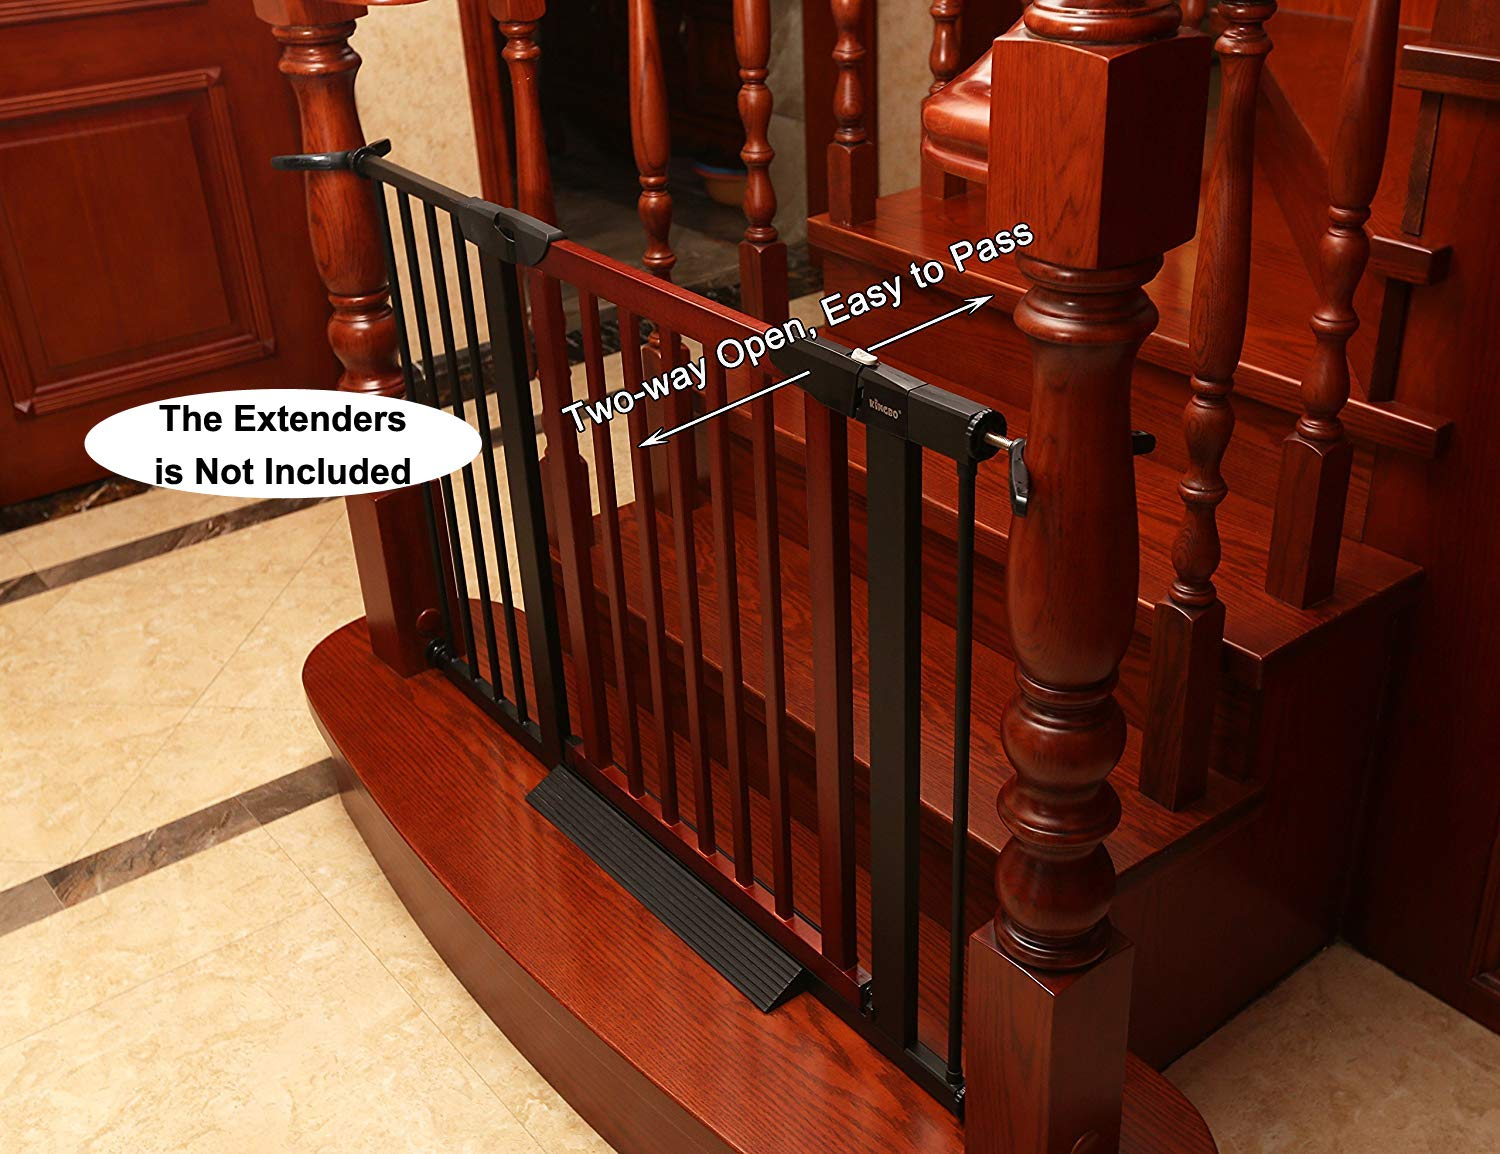 Baby Gate/Baby Gate for Stair with Banisters/Pet Gate, Fit Stairway or Doorway, Extendable, Auto Close, Pressure Mount (Wooded) by KINGBO (Image #6)